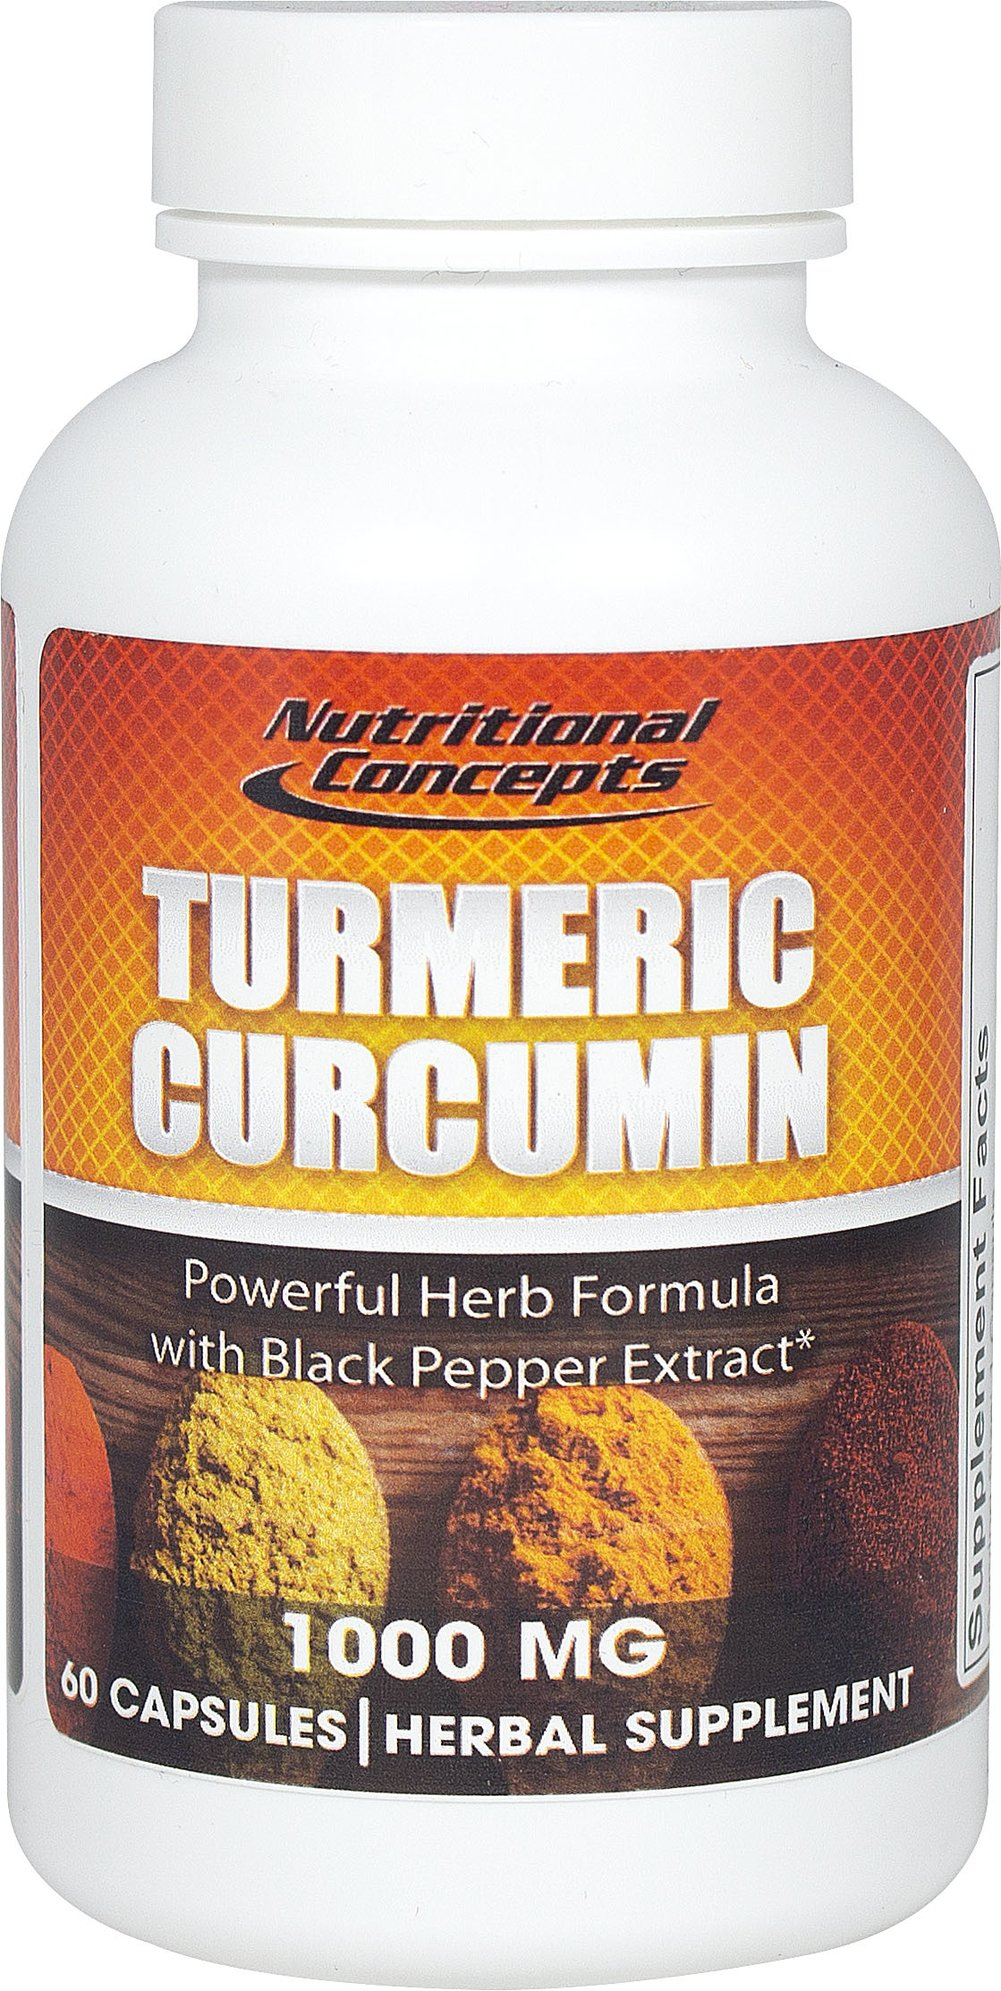 Turmeric Curcumin 1000mg Thumbnail Alternate Bottle View